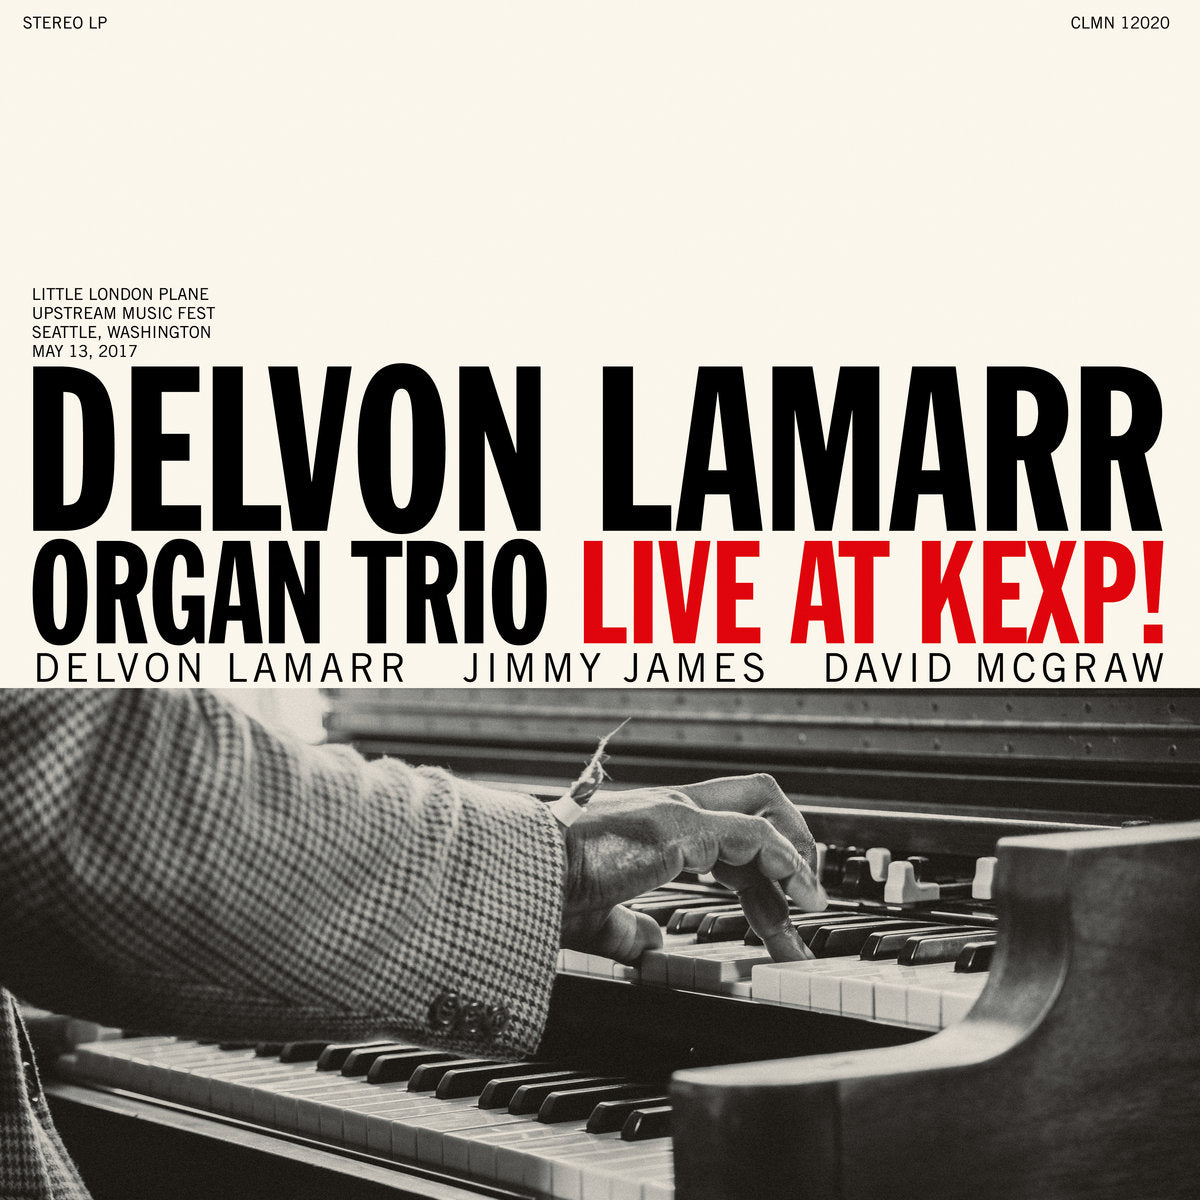 Delvon Lamarr Organ Trio - Live at KEXP! LP